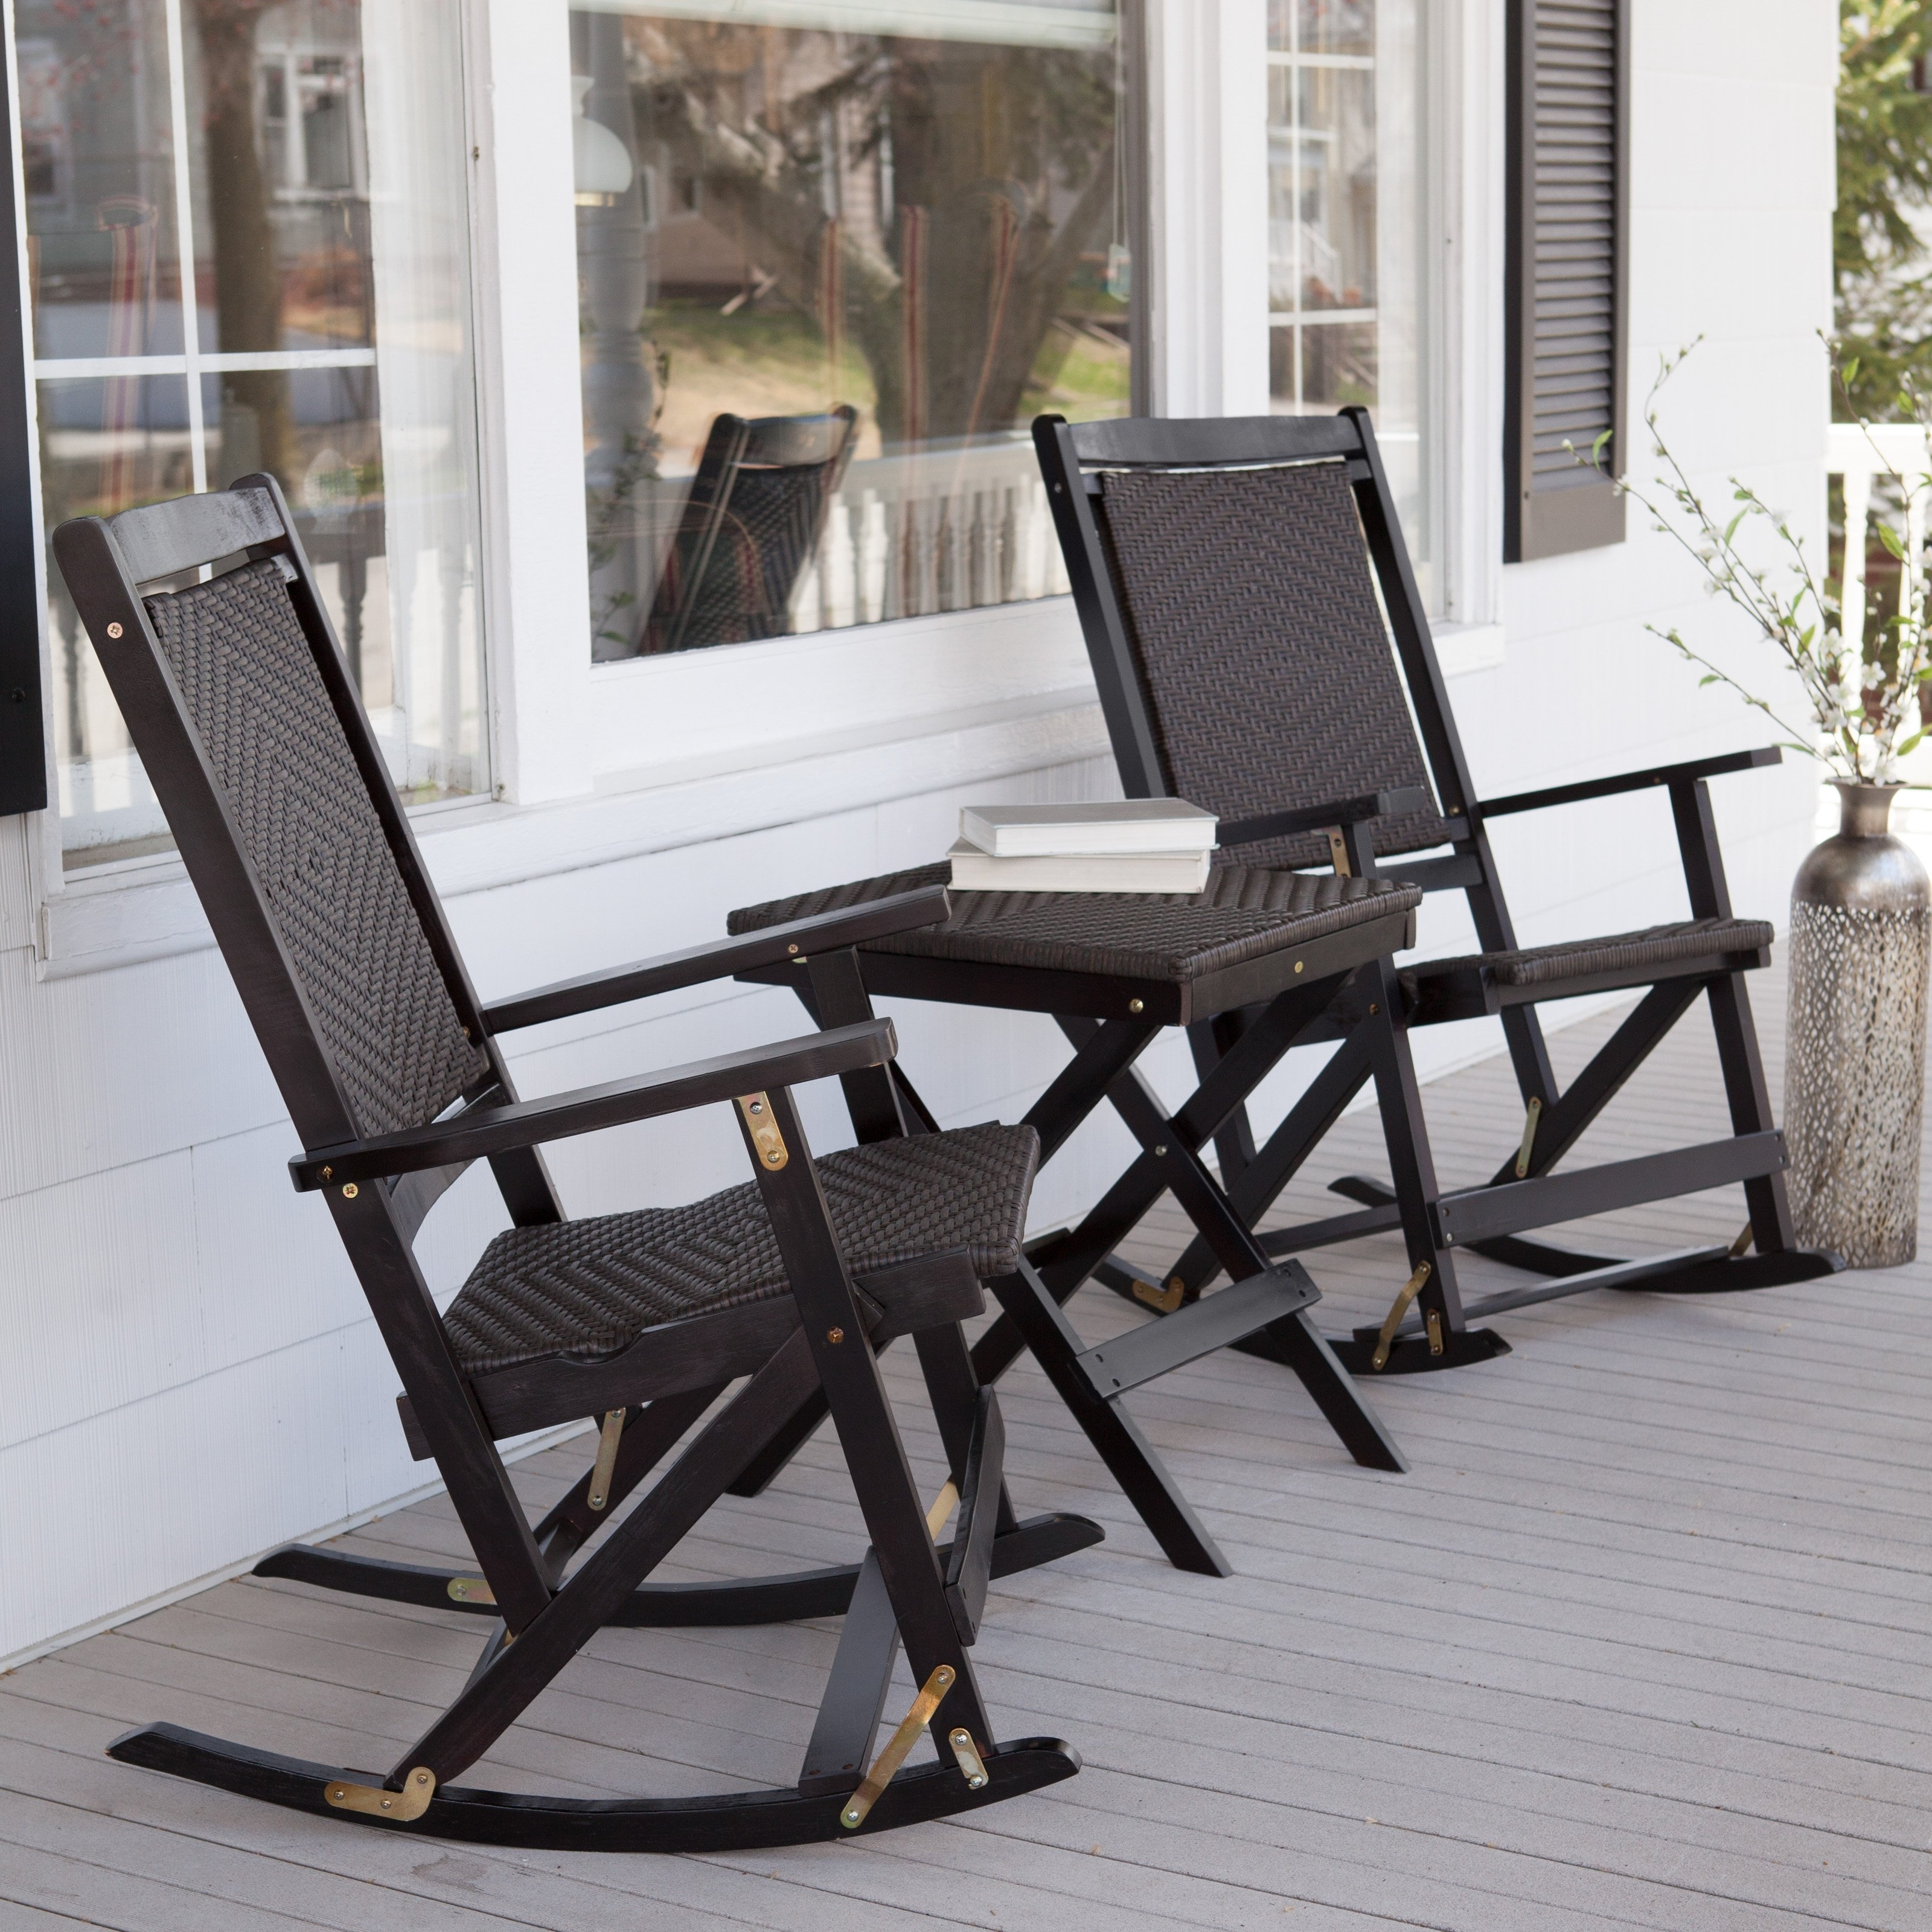 Black Patio Rocking Chairs With Most Up To Date Black Wicker Rocking Chair With Black Stained Wooden Based Combined (View 8 of 20)